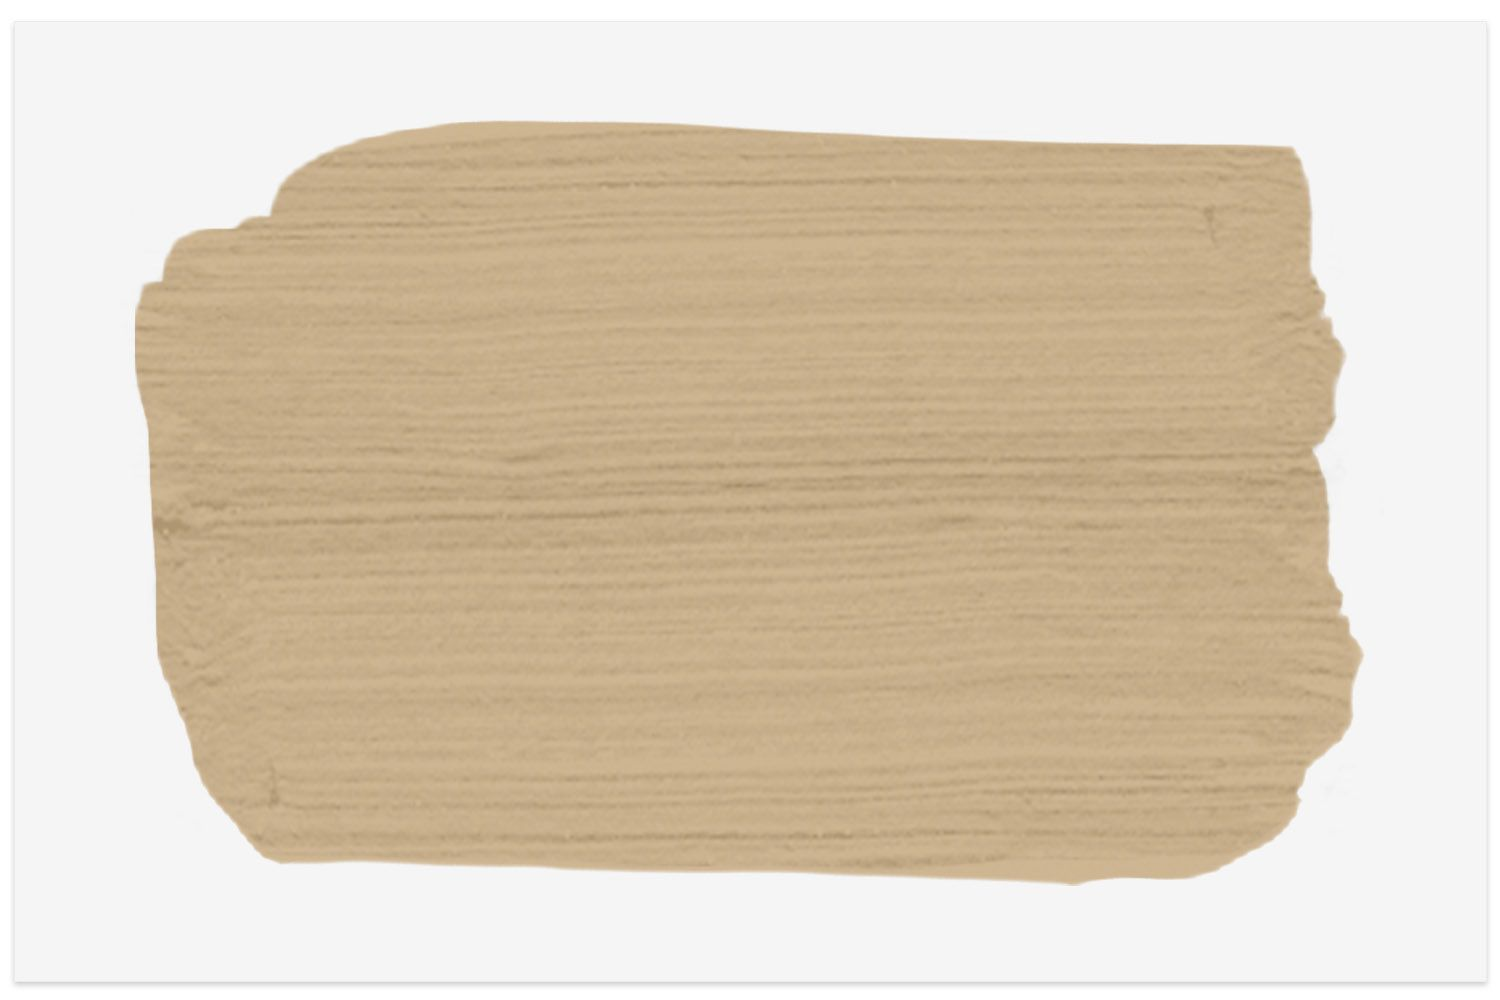 Whole Wheat paint swatch from Sherwin Williams